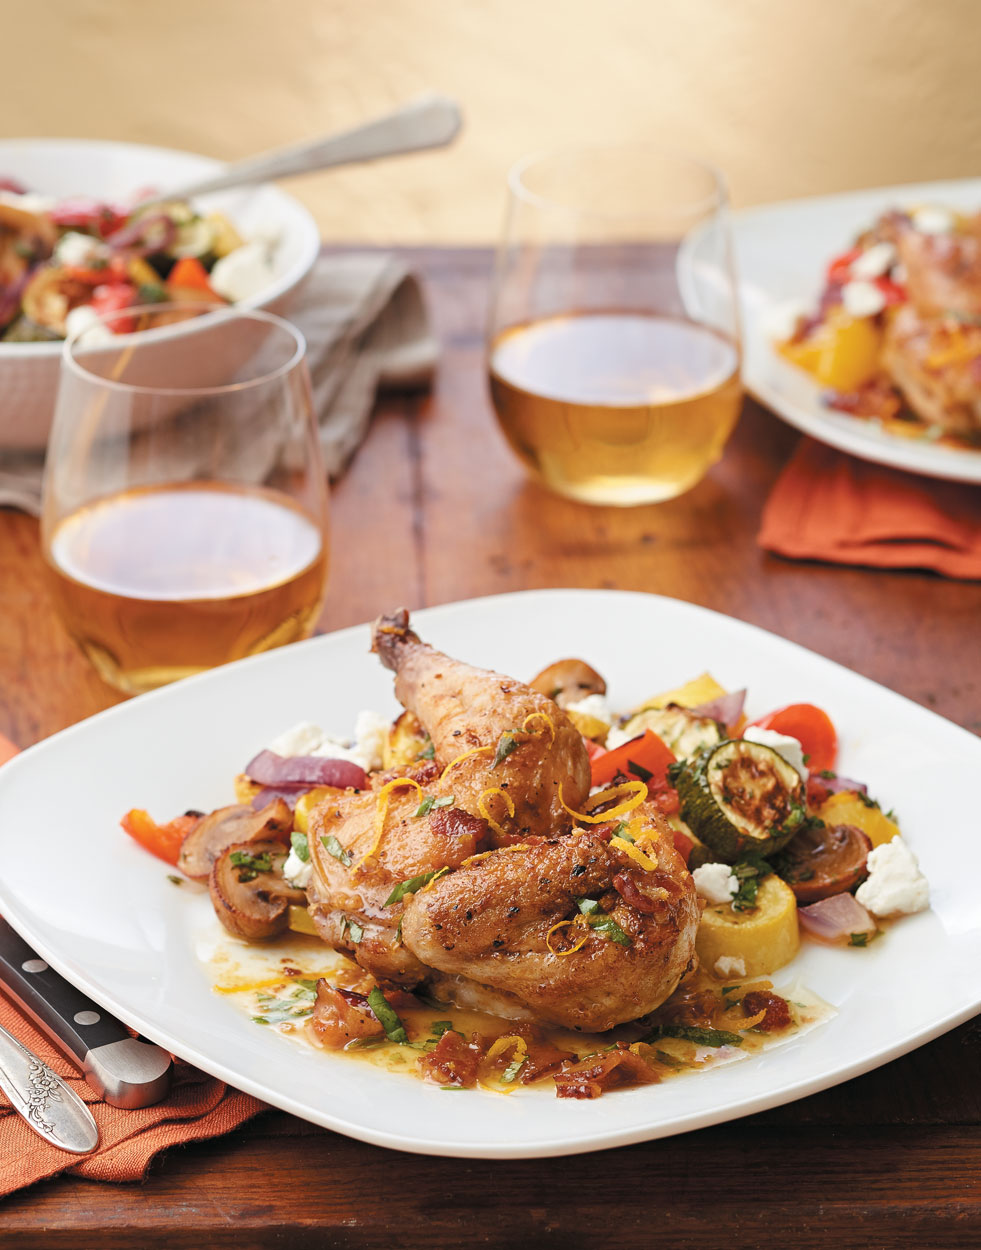 Pan-Roasted Cornish Game Hens